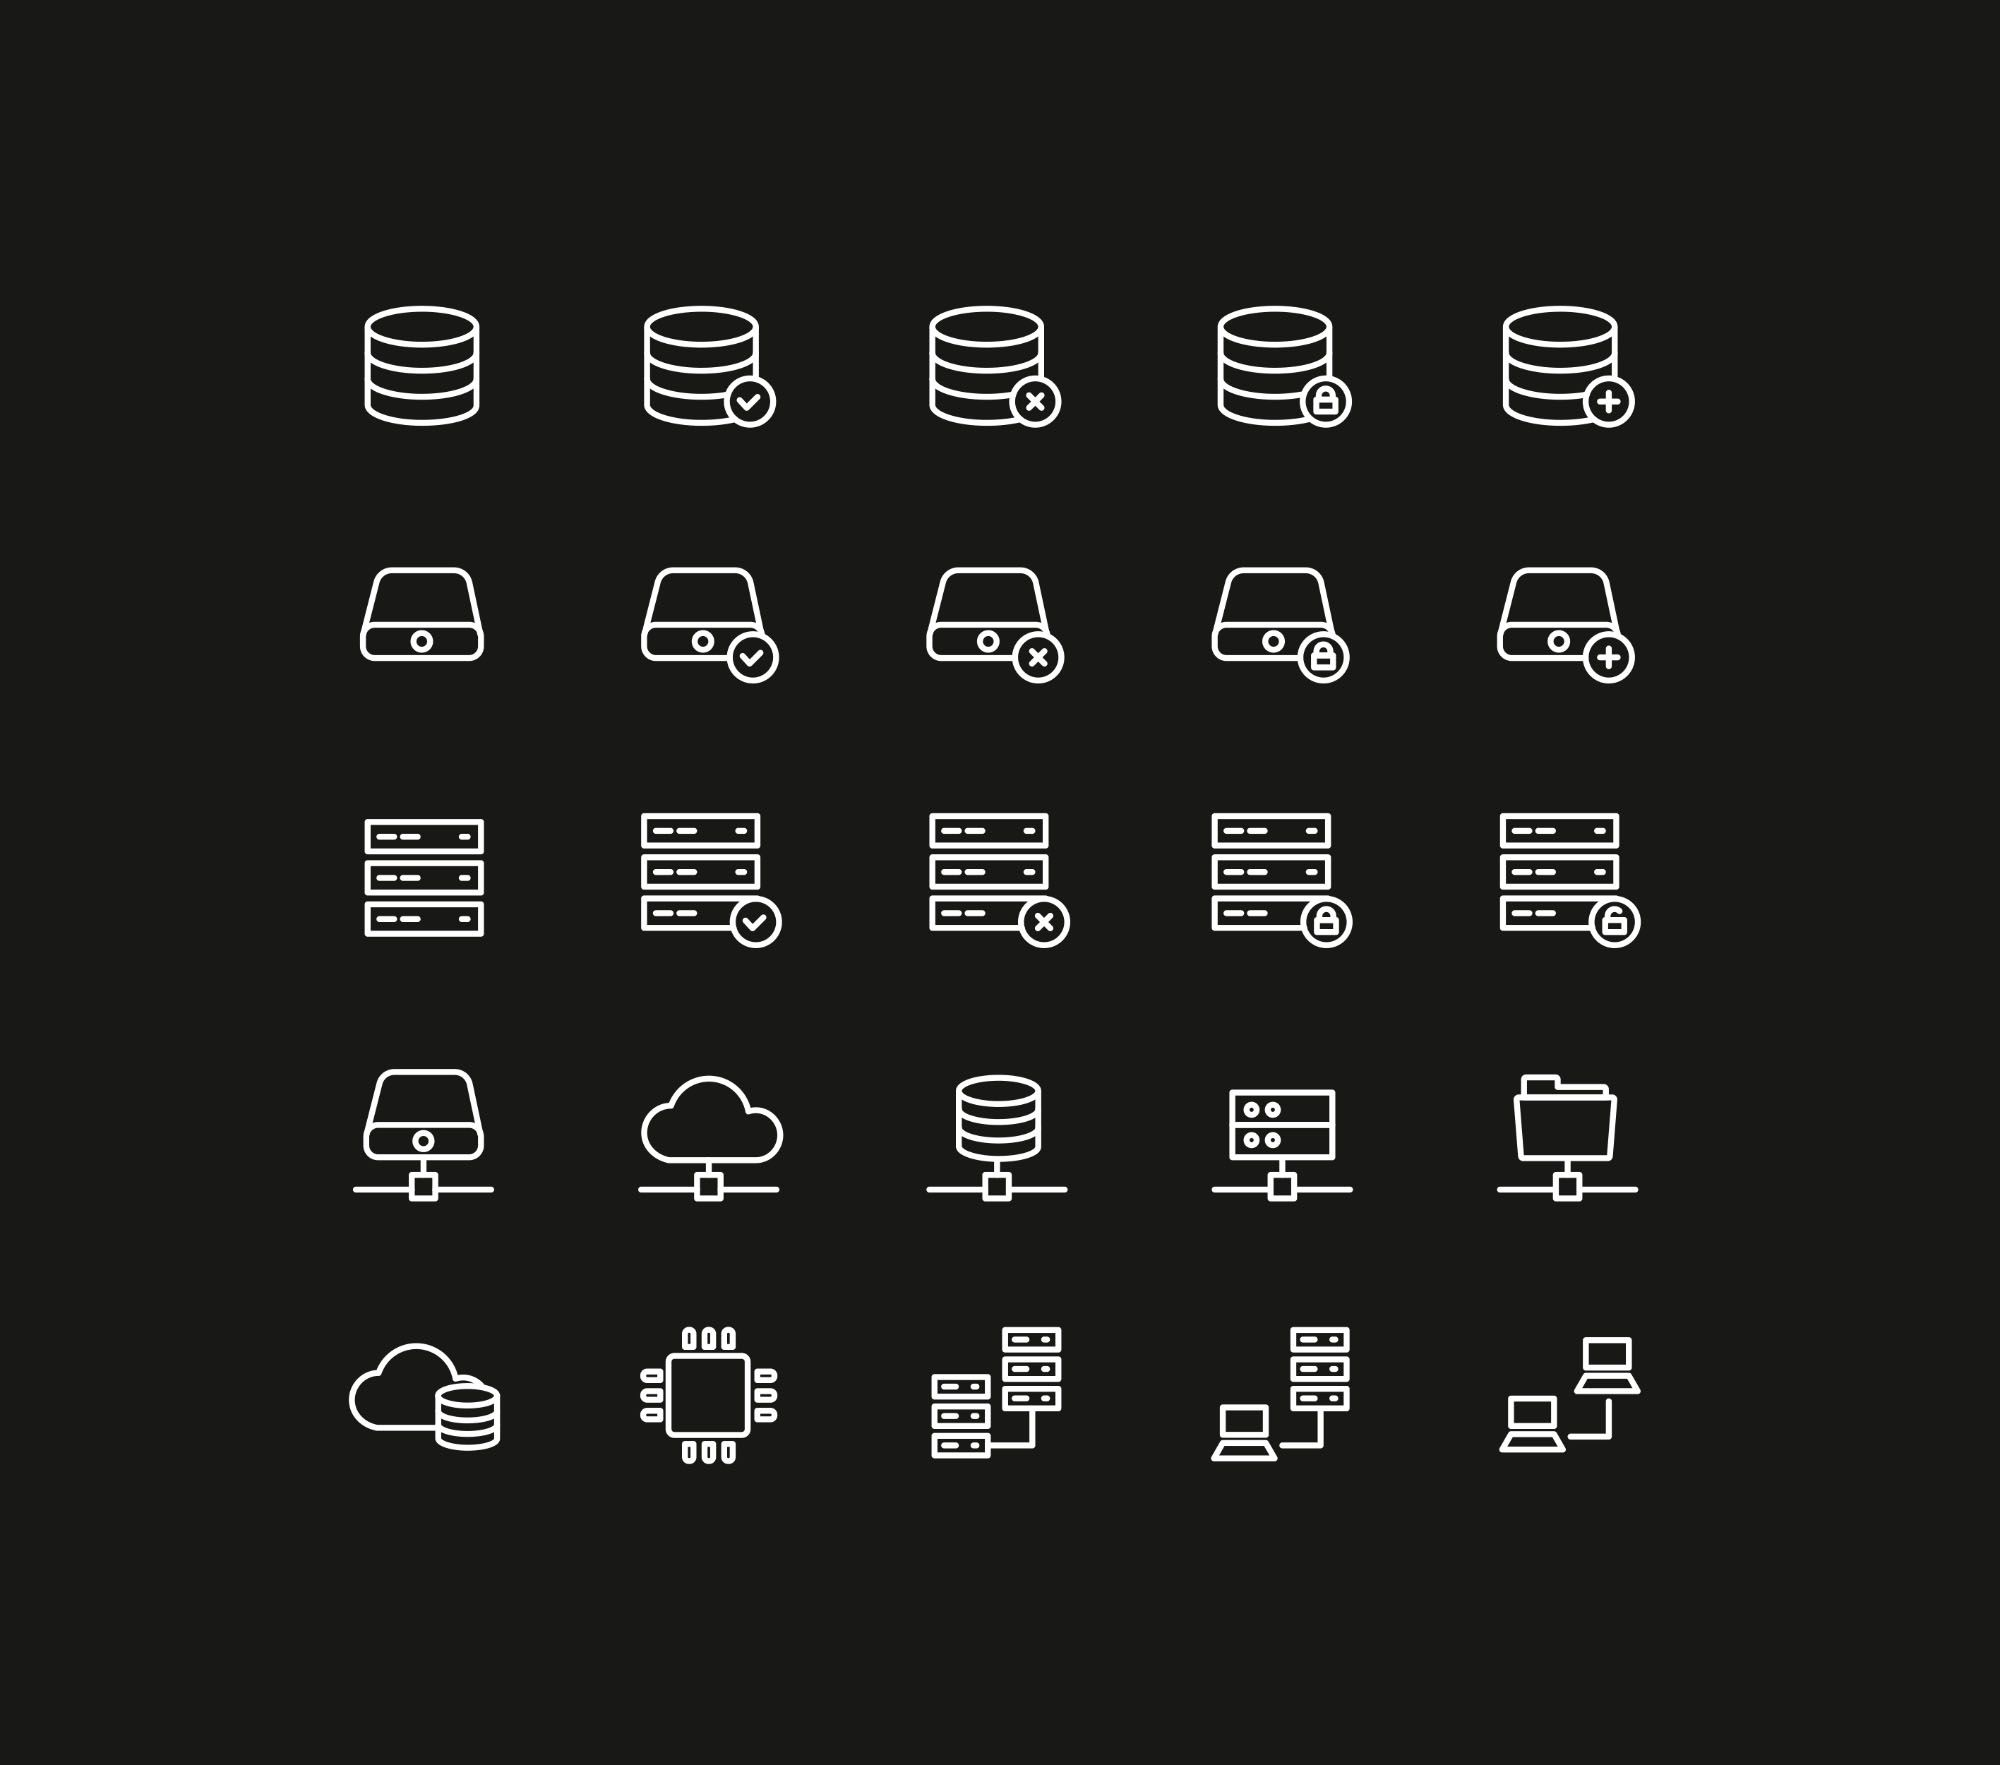 Database Storage Icons Dark Icon, Tech company logos